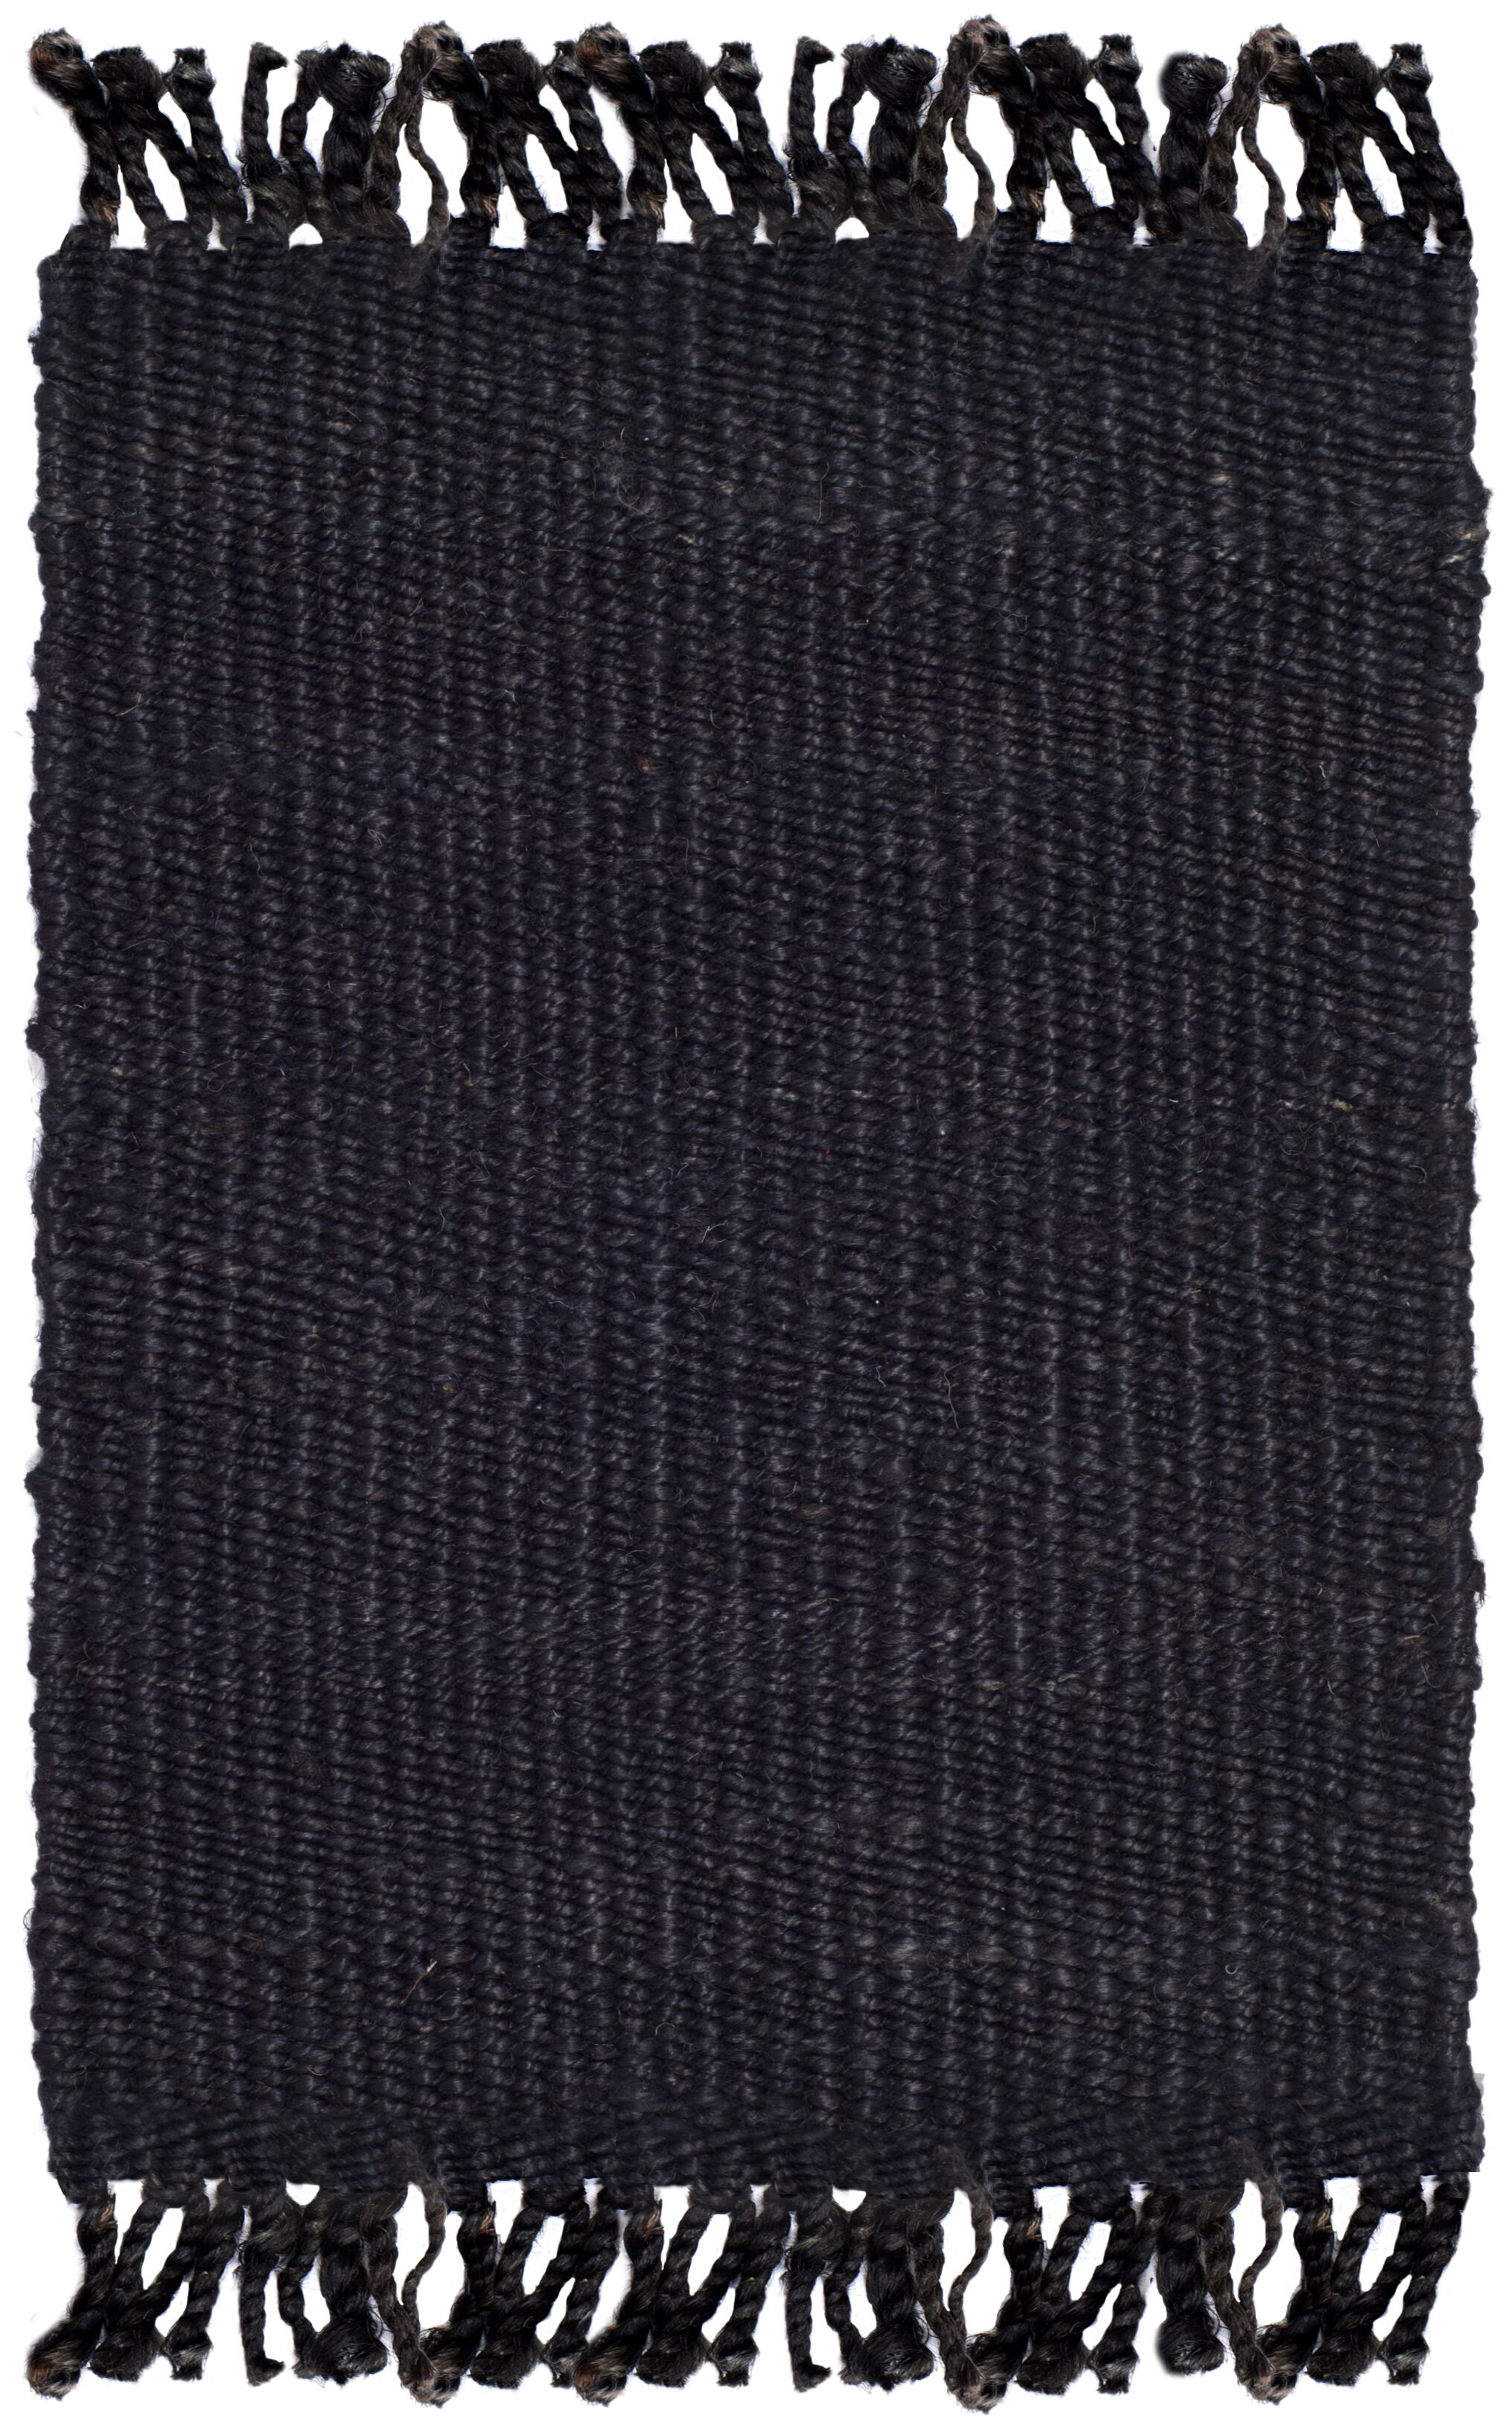 Lookout Fiber Hand-Woven Black Area Rug Rug Size: Square 6'